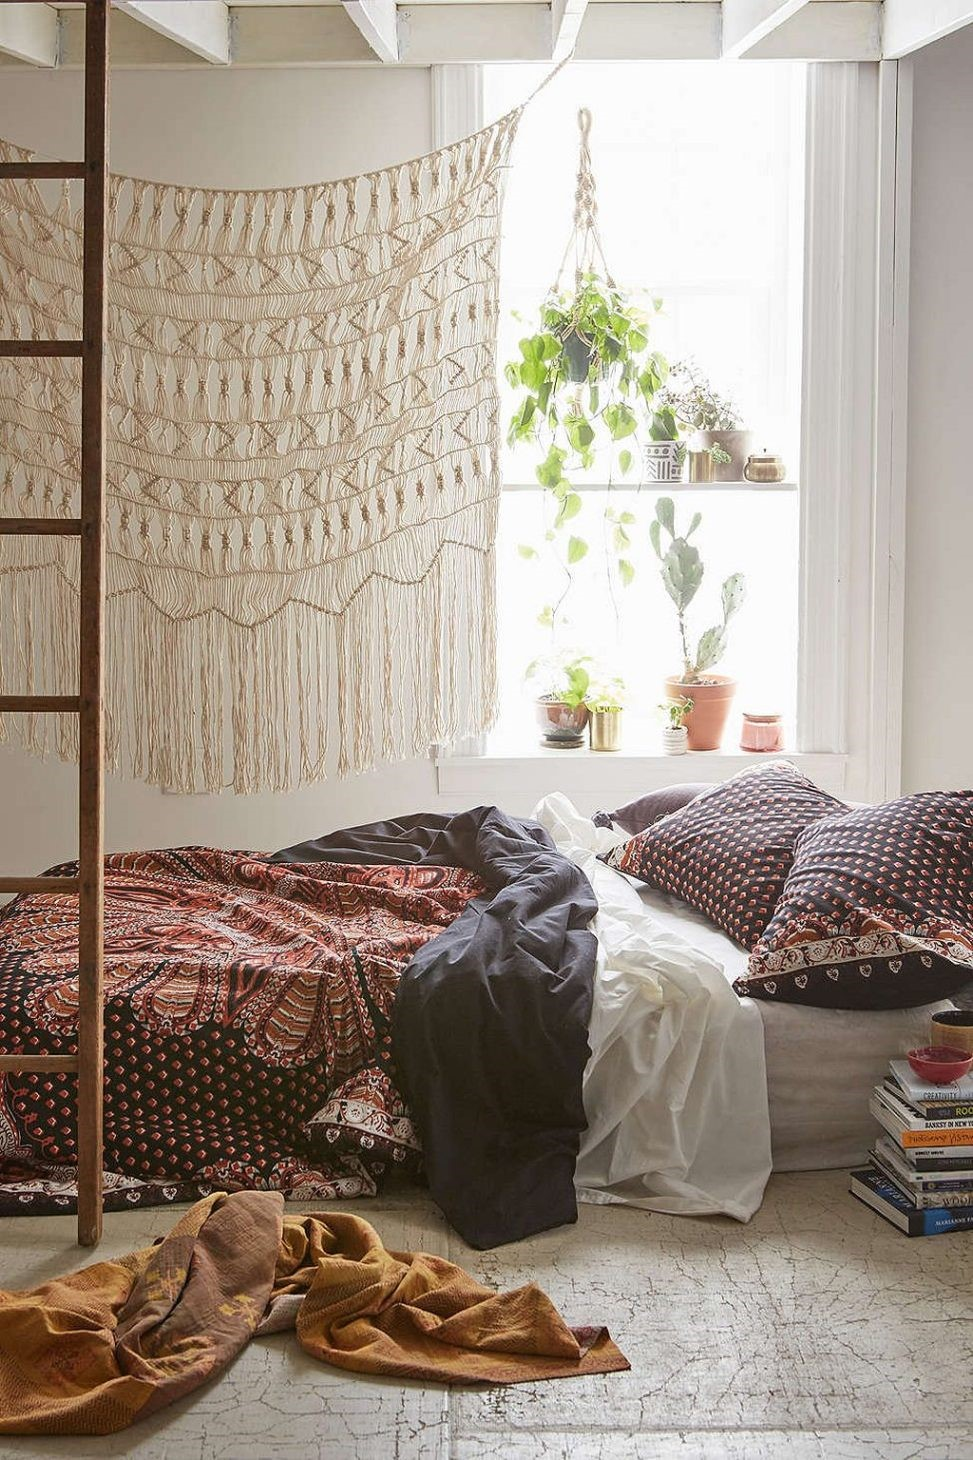 Bedroom-ideas-bohemian